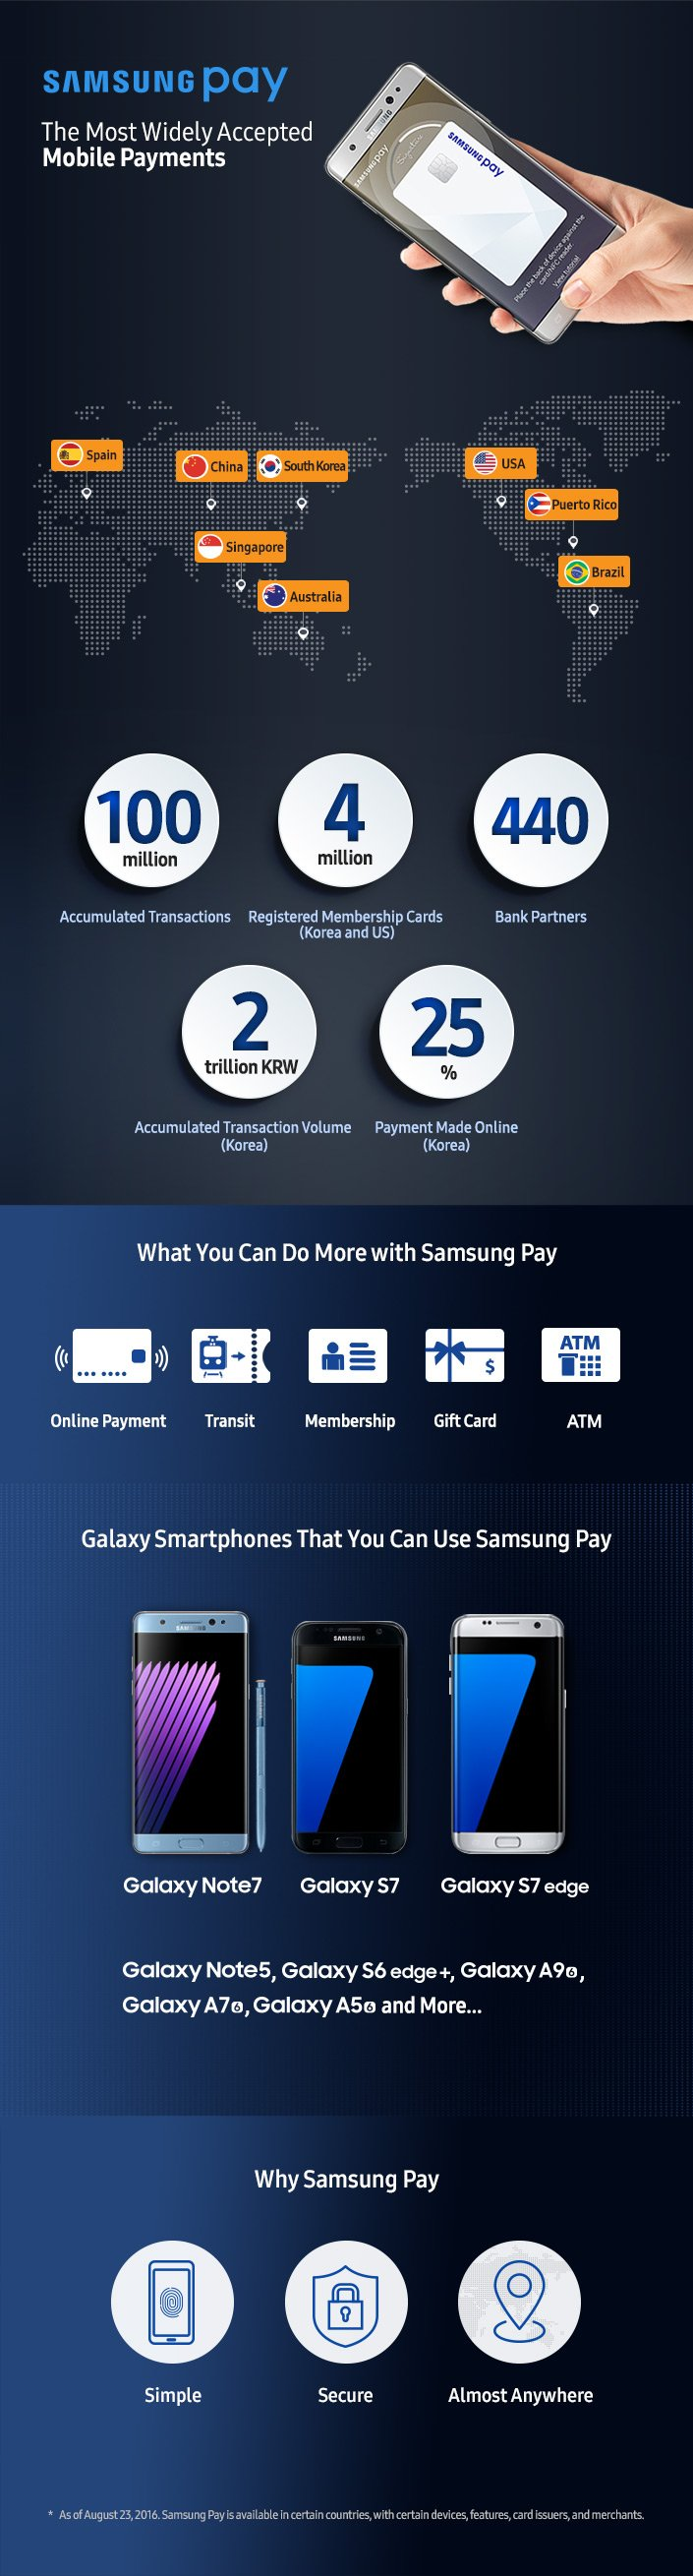 samsung-pay-infographic